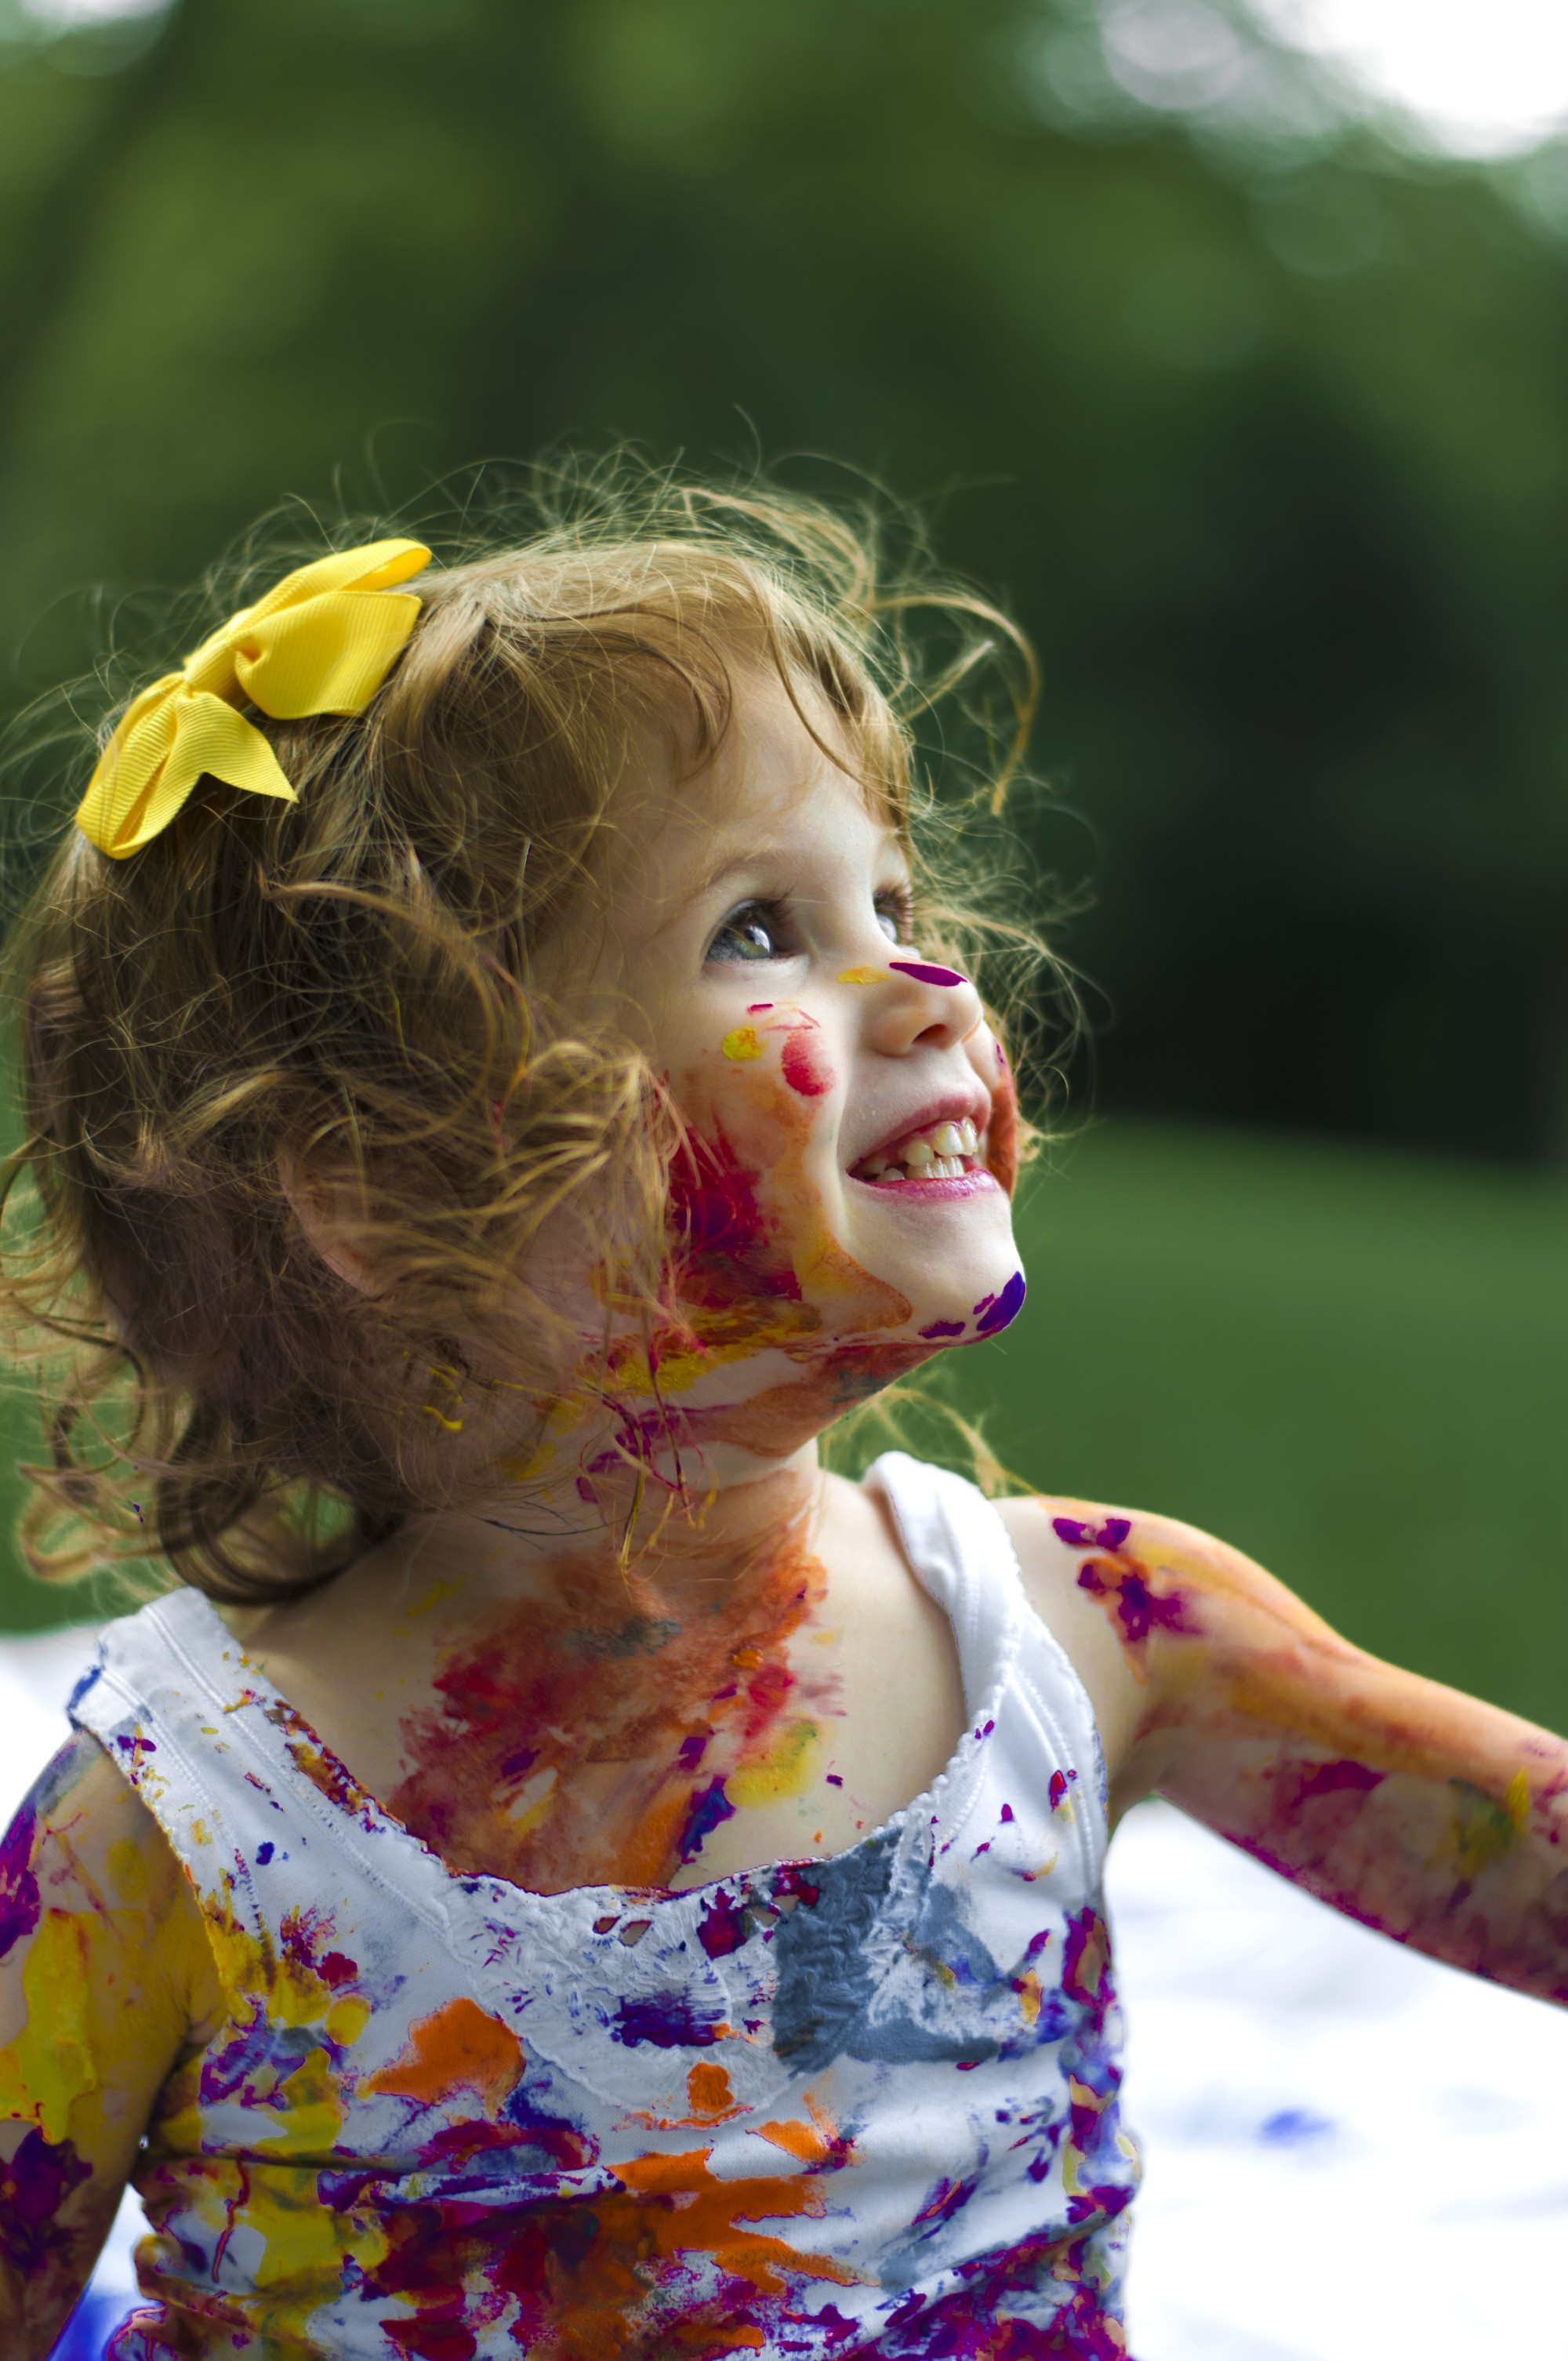 Little girl with big smile, standing, looking up. Colorful paint splotches all over her face and white dress. She looks happy